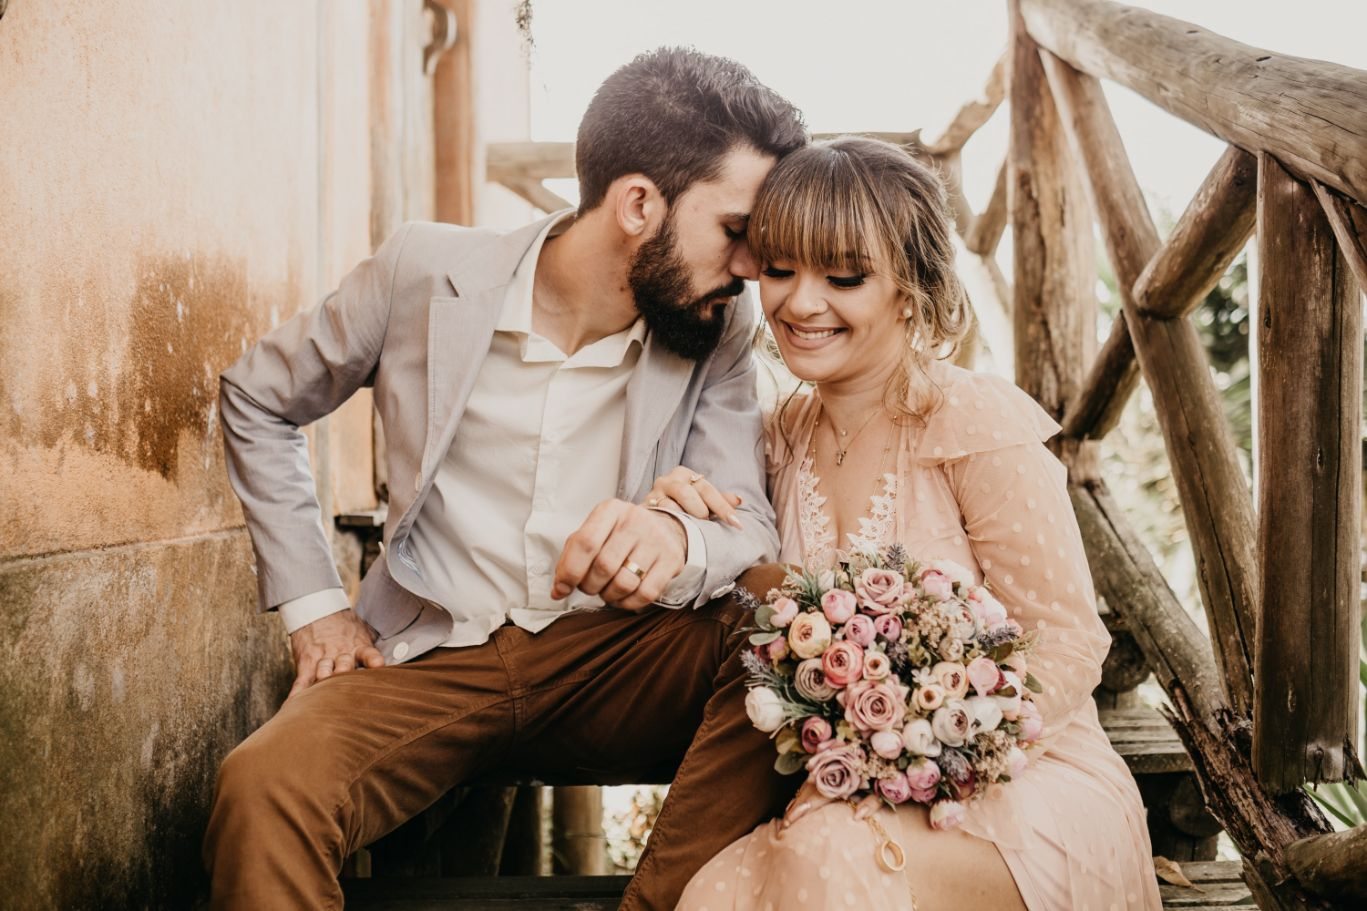 20 questions to plan your wedding